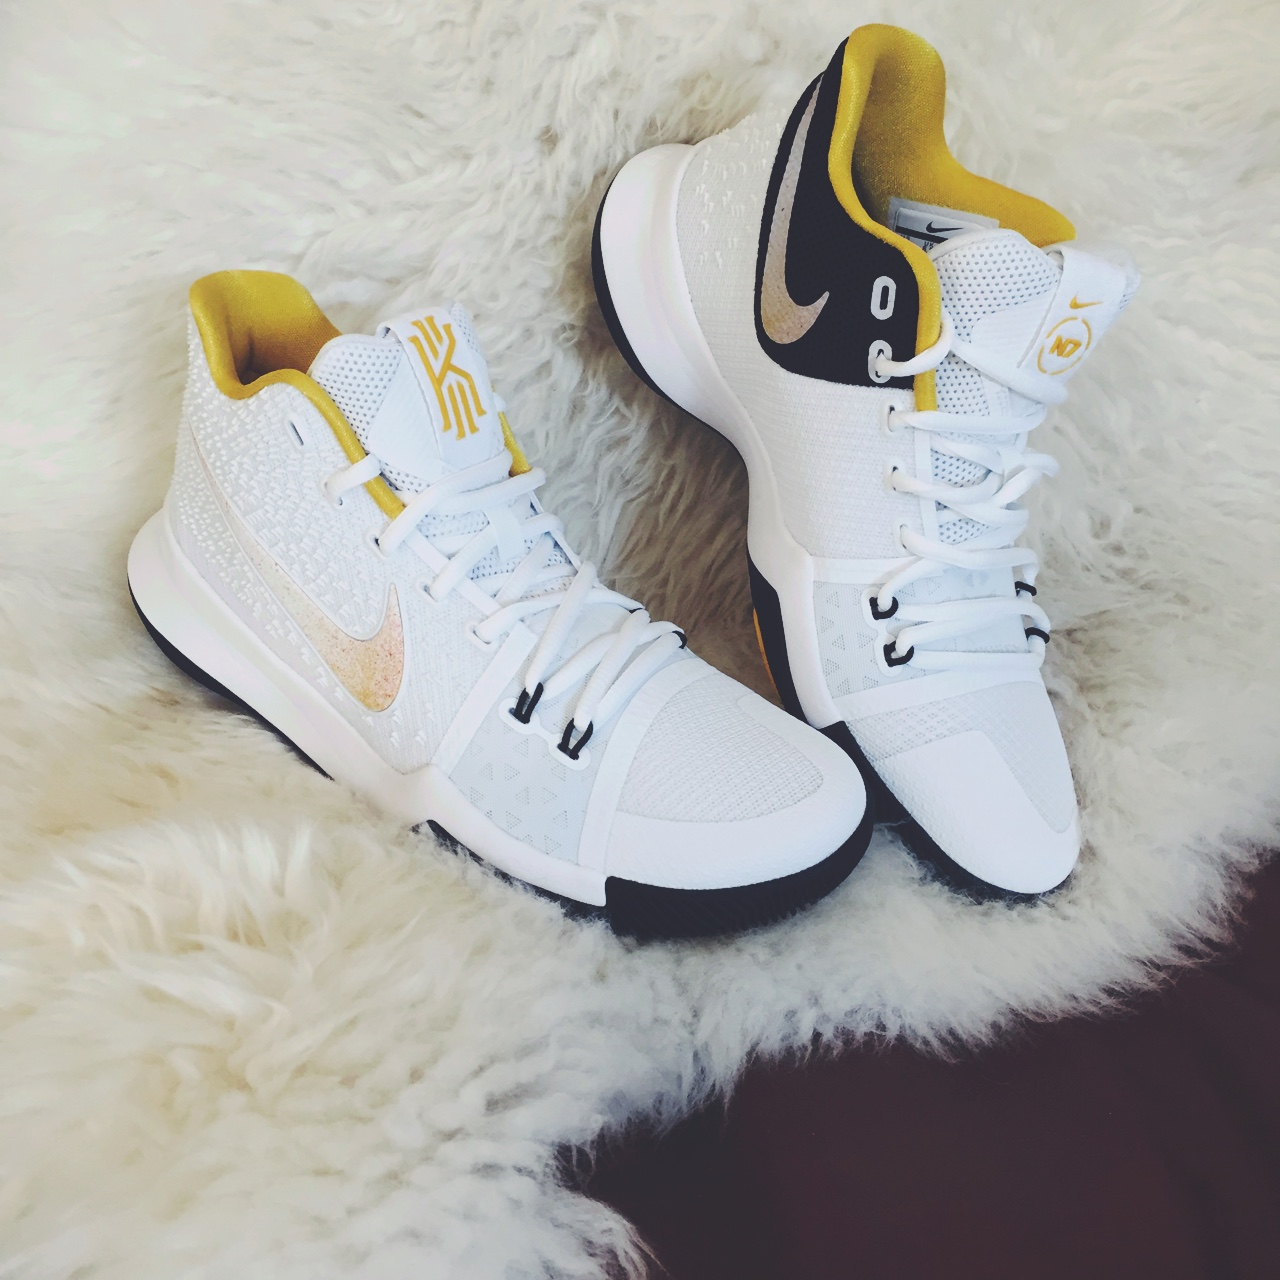 cheap for discount 95bf3 9e8bd Kyrie 3 N7. Nike Kyrie Irving White/Varsity... - Depop